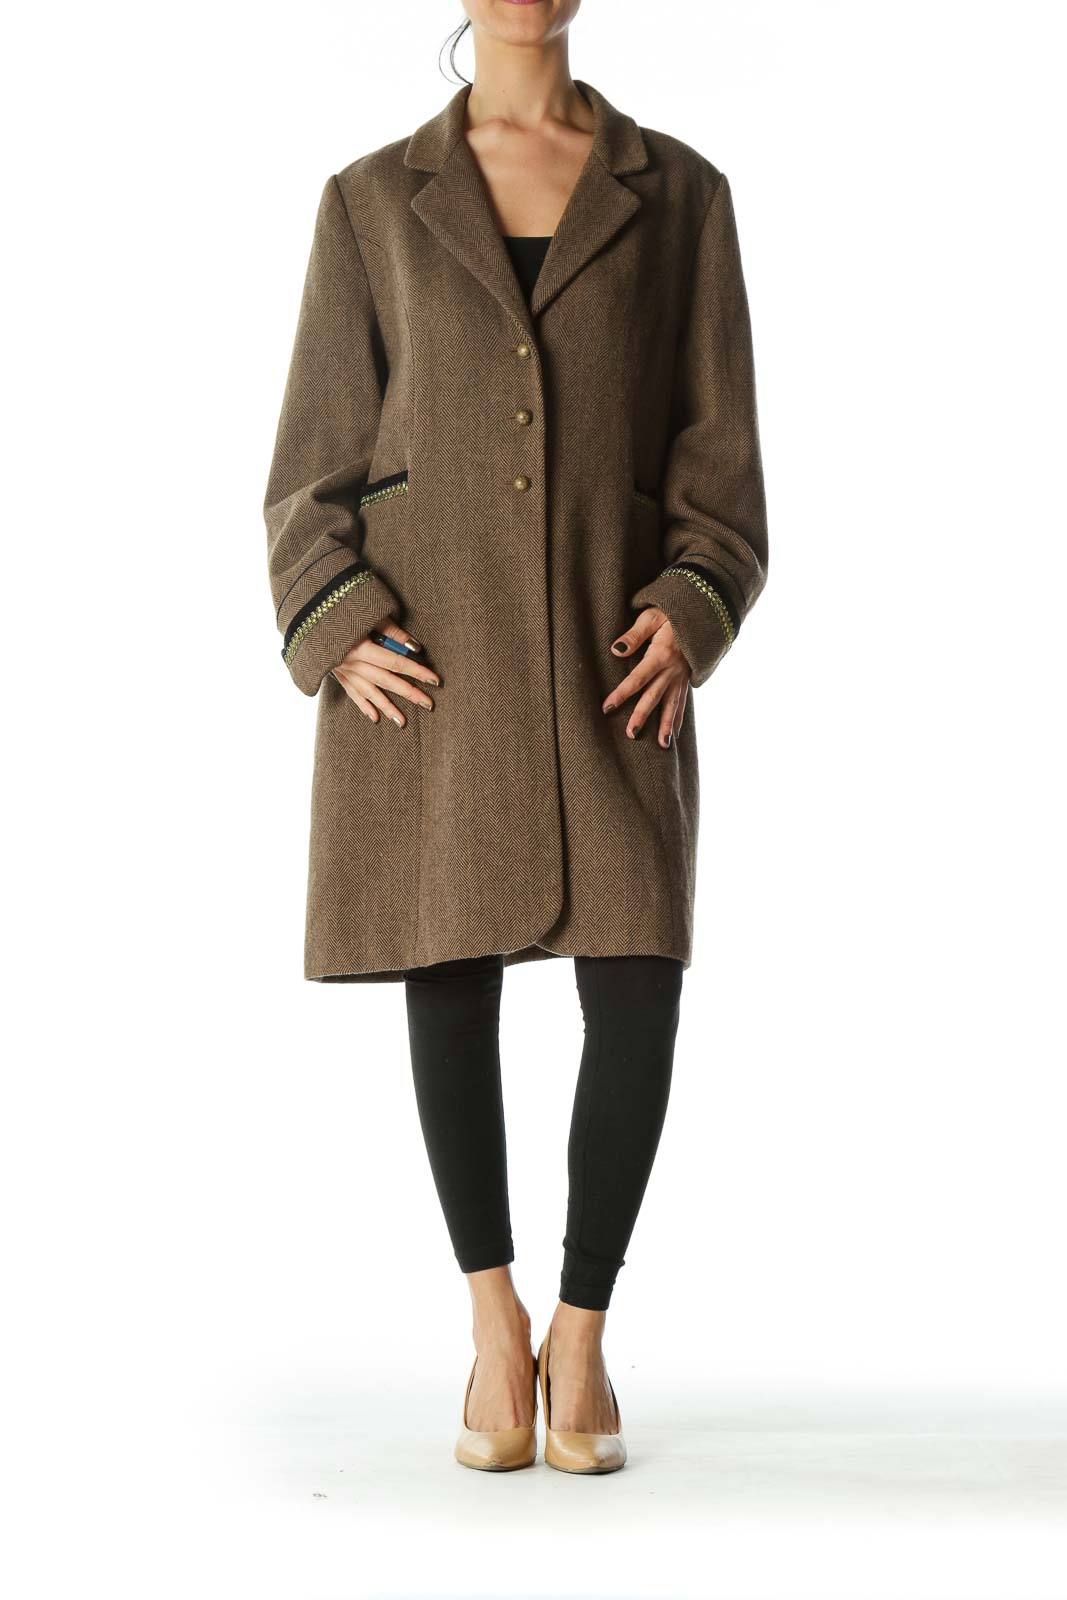 Brown Black Harringbone Metallic and Velvet Accents Coat